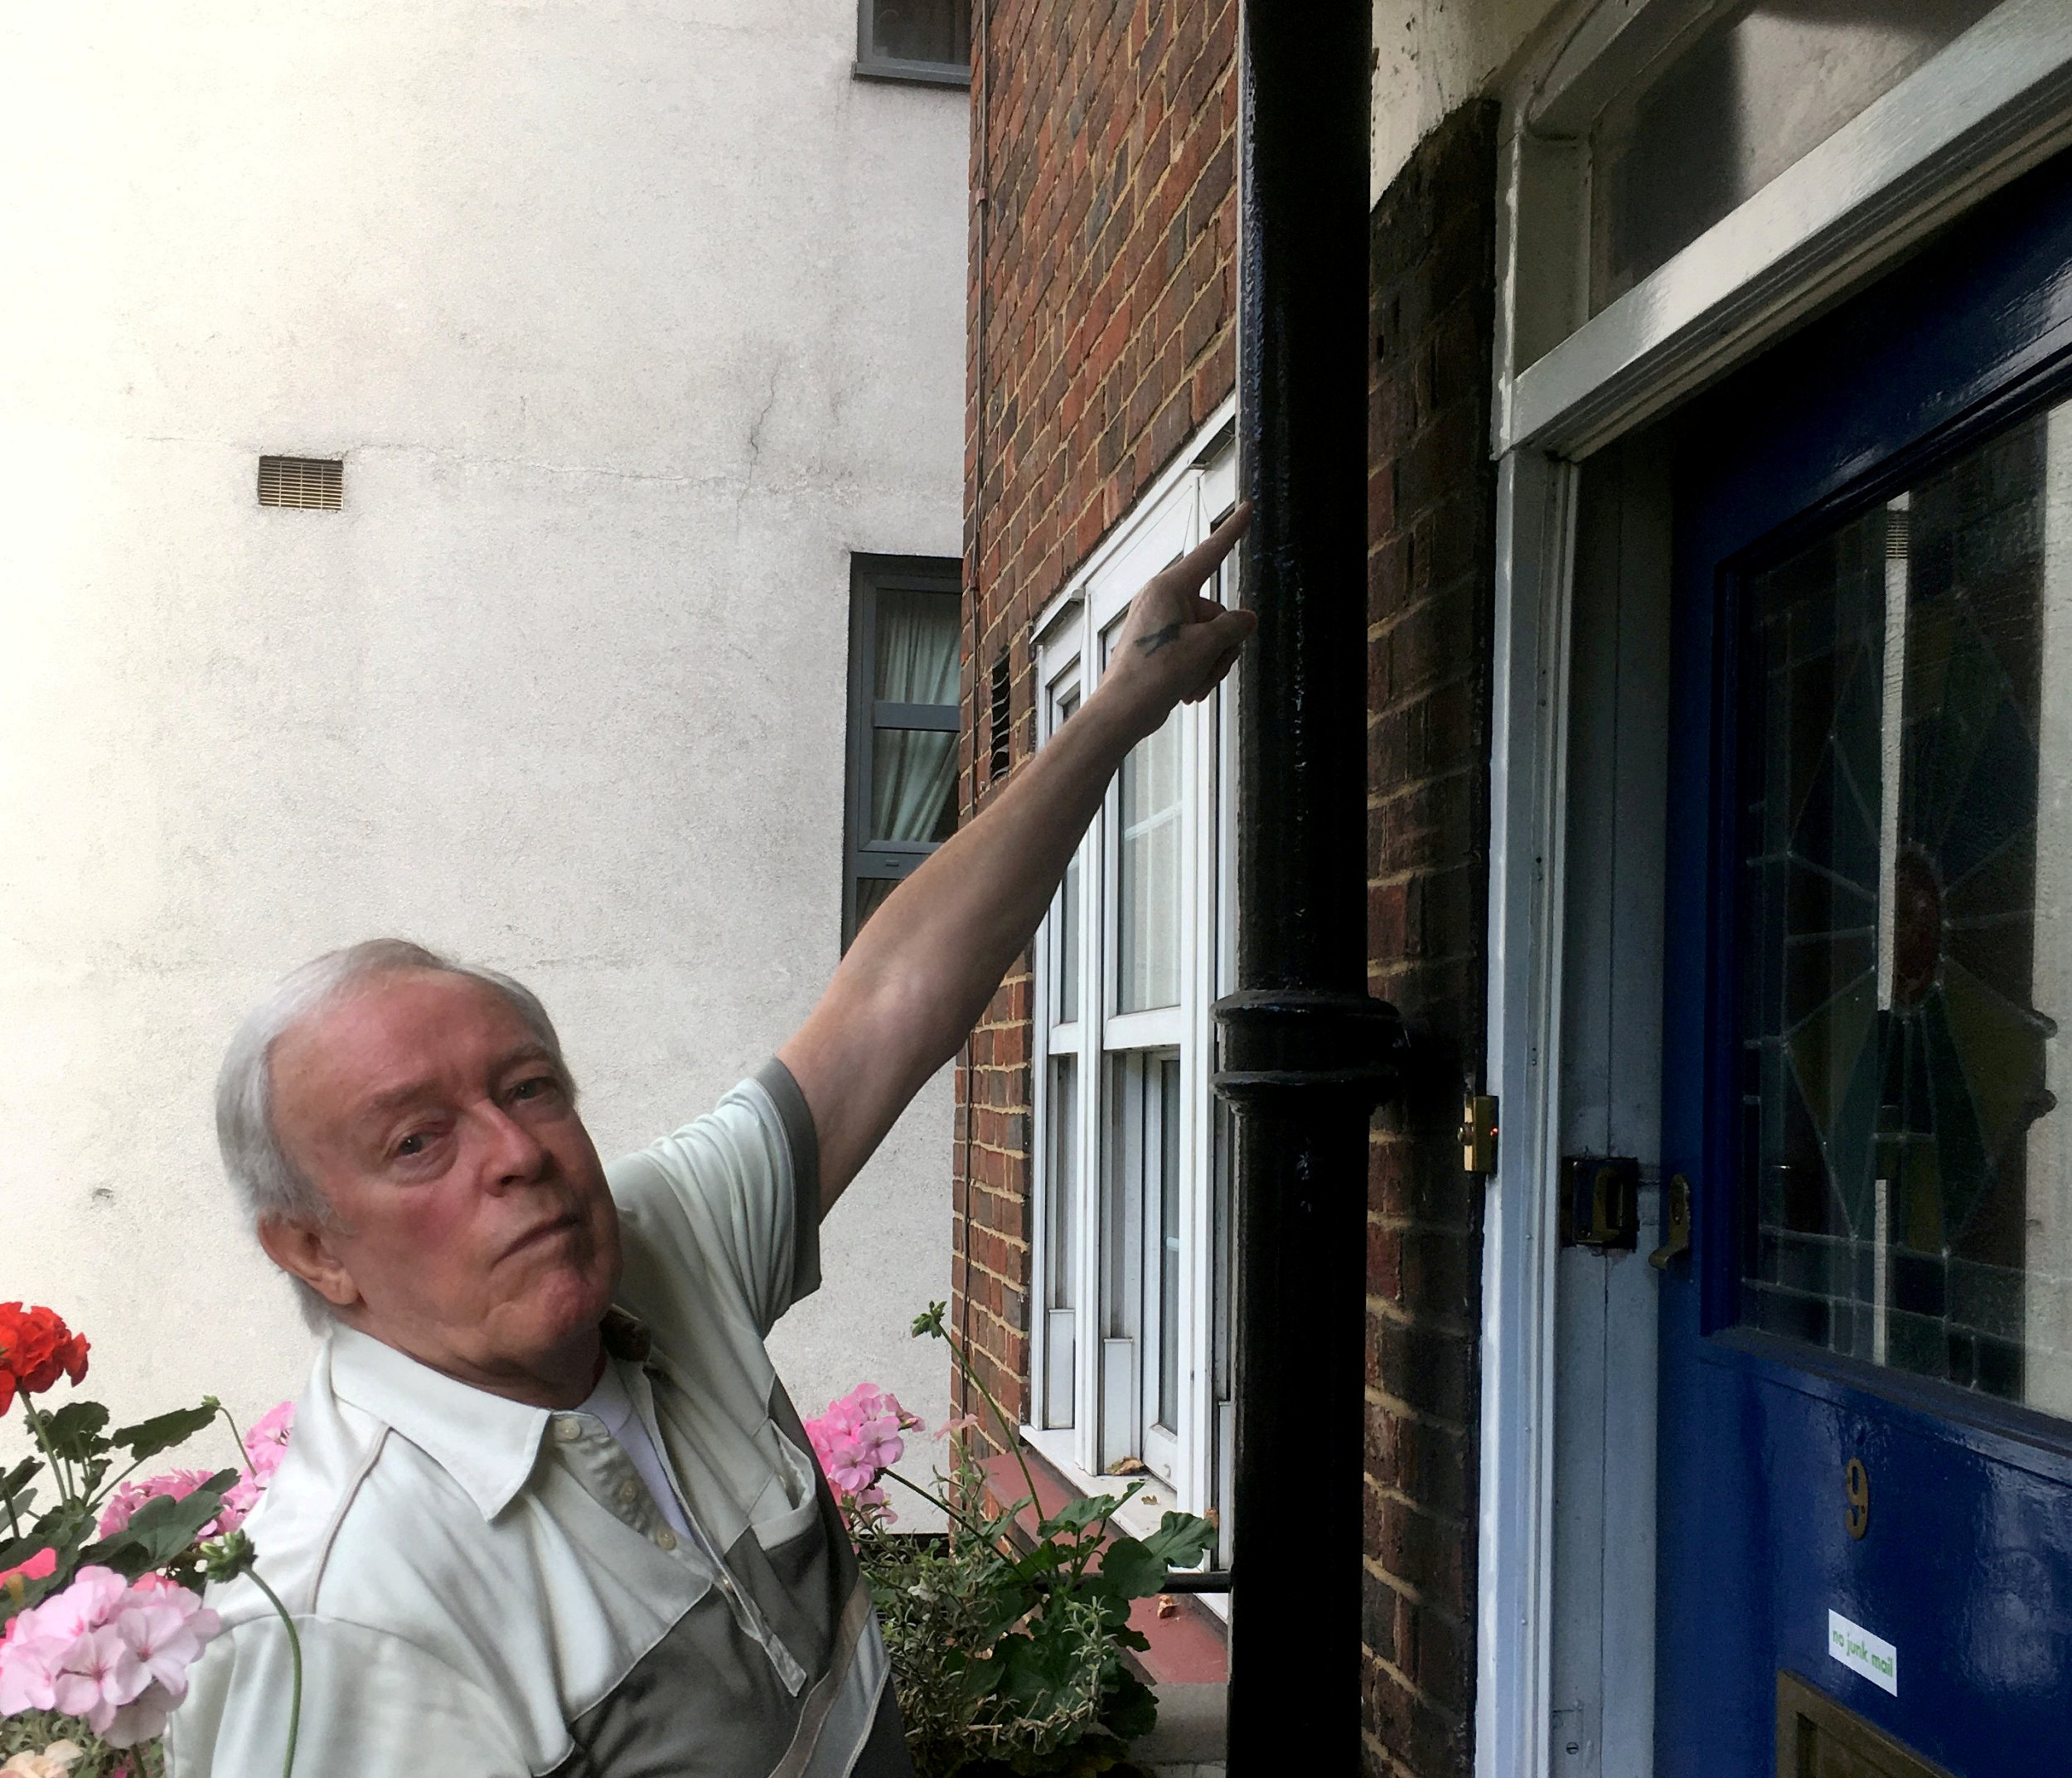 Len James points to the spot where he had installed a CCTV camera outside his flat. See National News story NNCAMERA; A pensioner who put CCTV cameras on his flat to reduce crime was prosecuted by his council who ordered him to remove them because they breached his tenancy agreement and damaged the brickwork. Len James, 77, was left with a ?2,000 costs order, but said his pair of cameras helped catch robbers, car vandals and bike thieves after he installed them in his south London block of flats. The retired plumber and heating engineer said they also kept drug dealers away as they overlooked the rear and front from his second-storey flat in Battersea. But he was ordered to pay court costs to his council after it got a county court order to have them removed because they breached a ban in his tenancy agreement to alter the outside of the property.